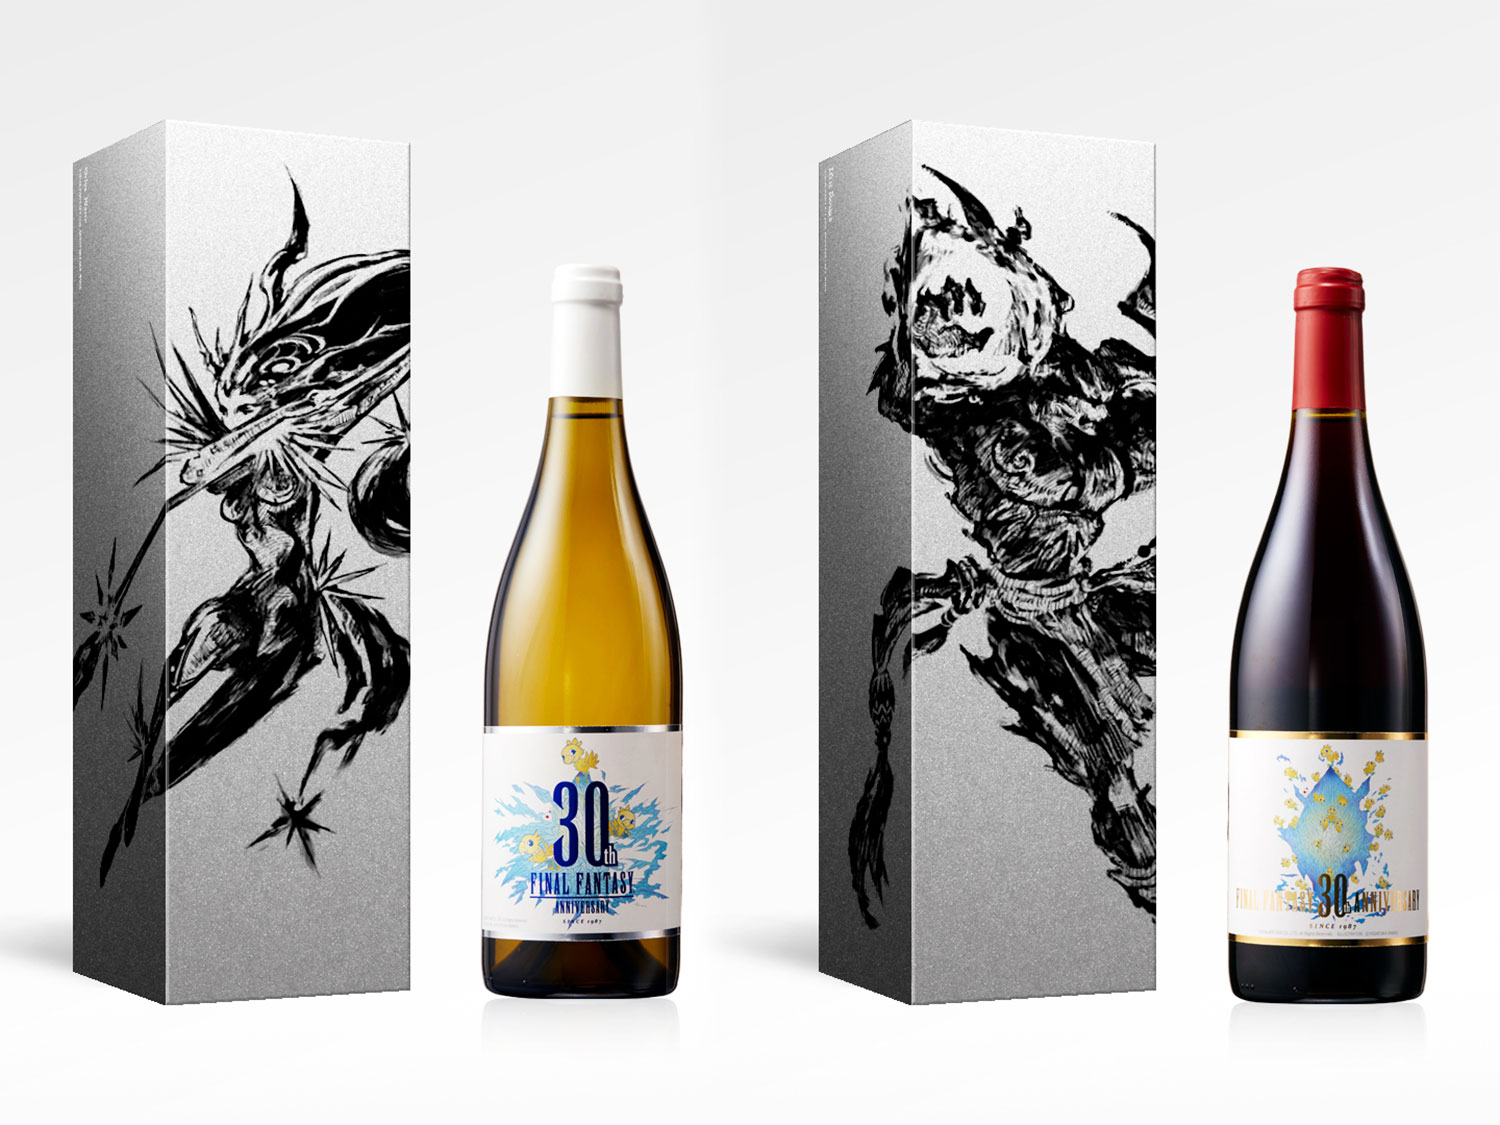 'Final Fantasy' Fans Can Toast the Game's 30th Anniversary With Two Limited-Edition Wines